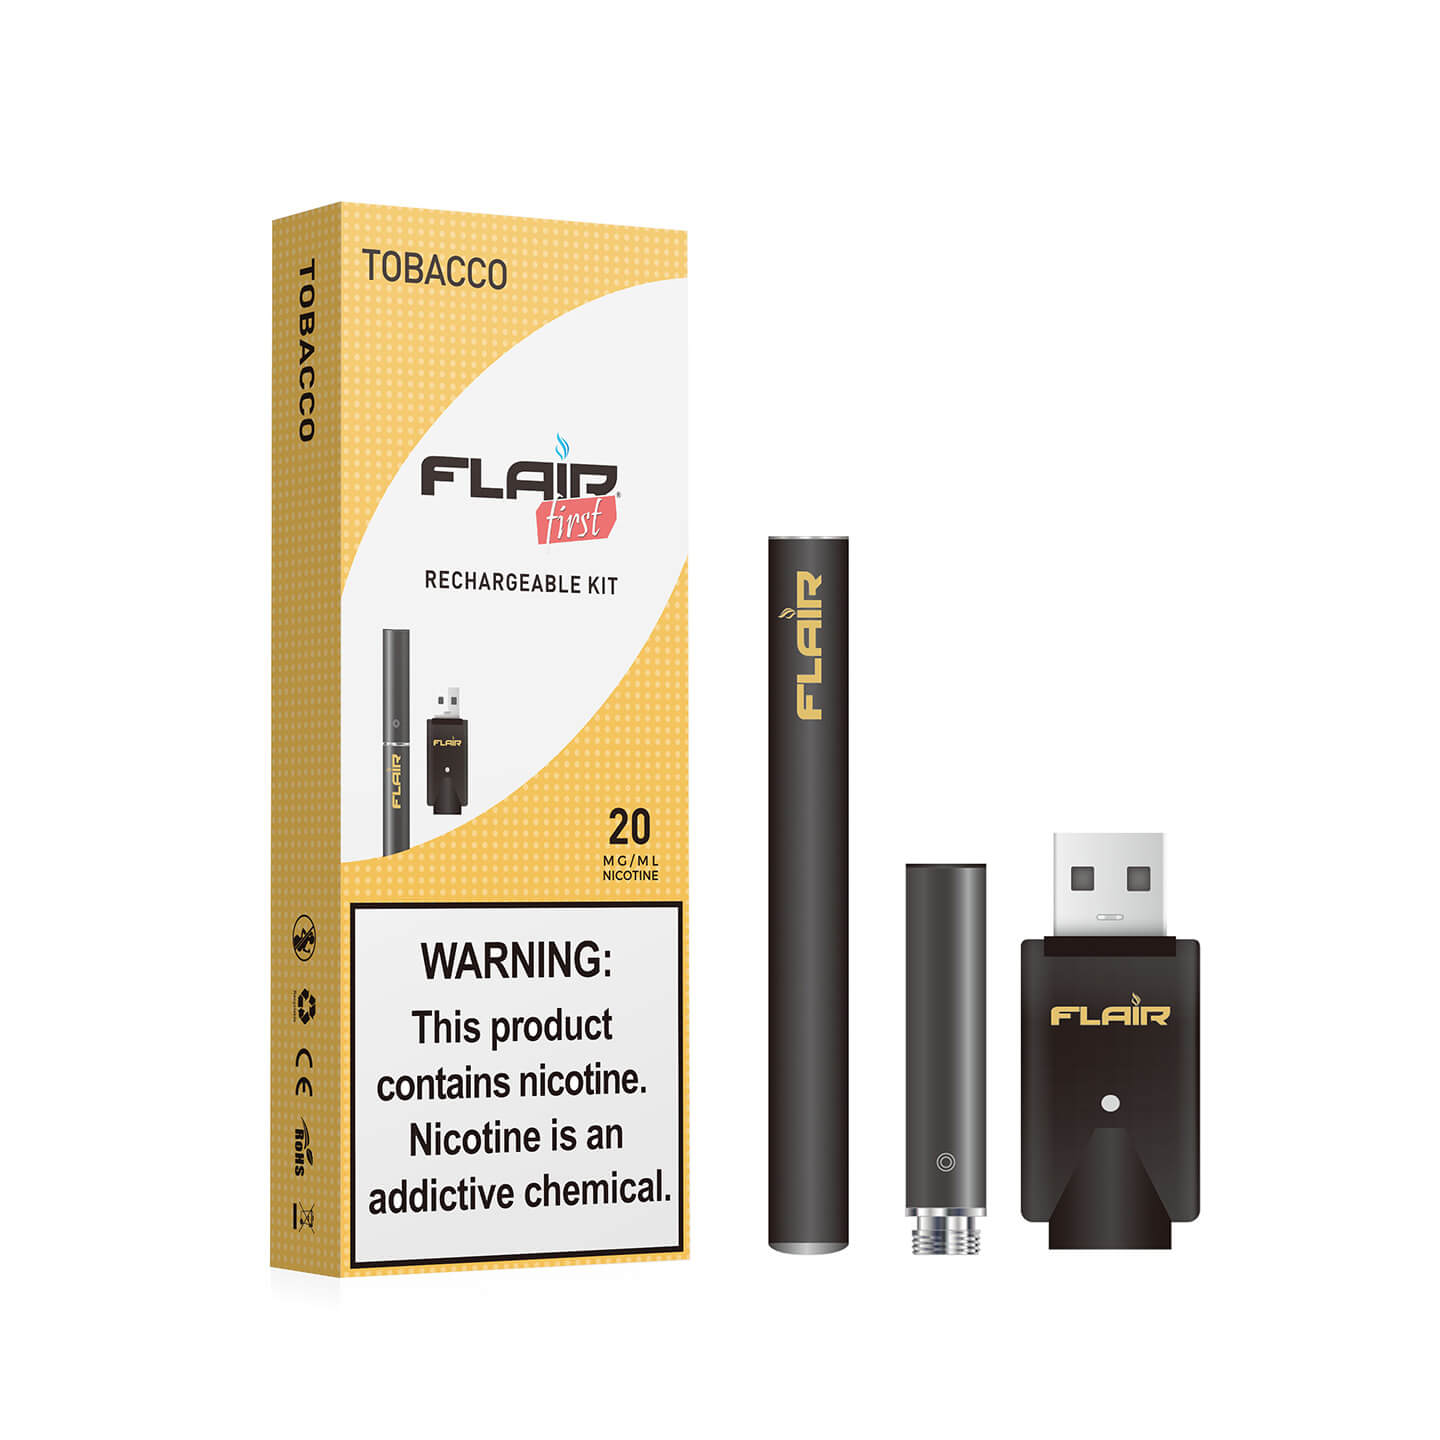 Main image of Flair Rechargeable E-cig Kit (20 Mg Tobacco)